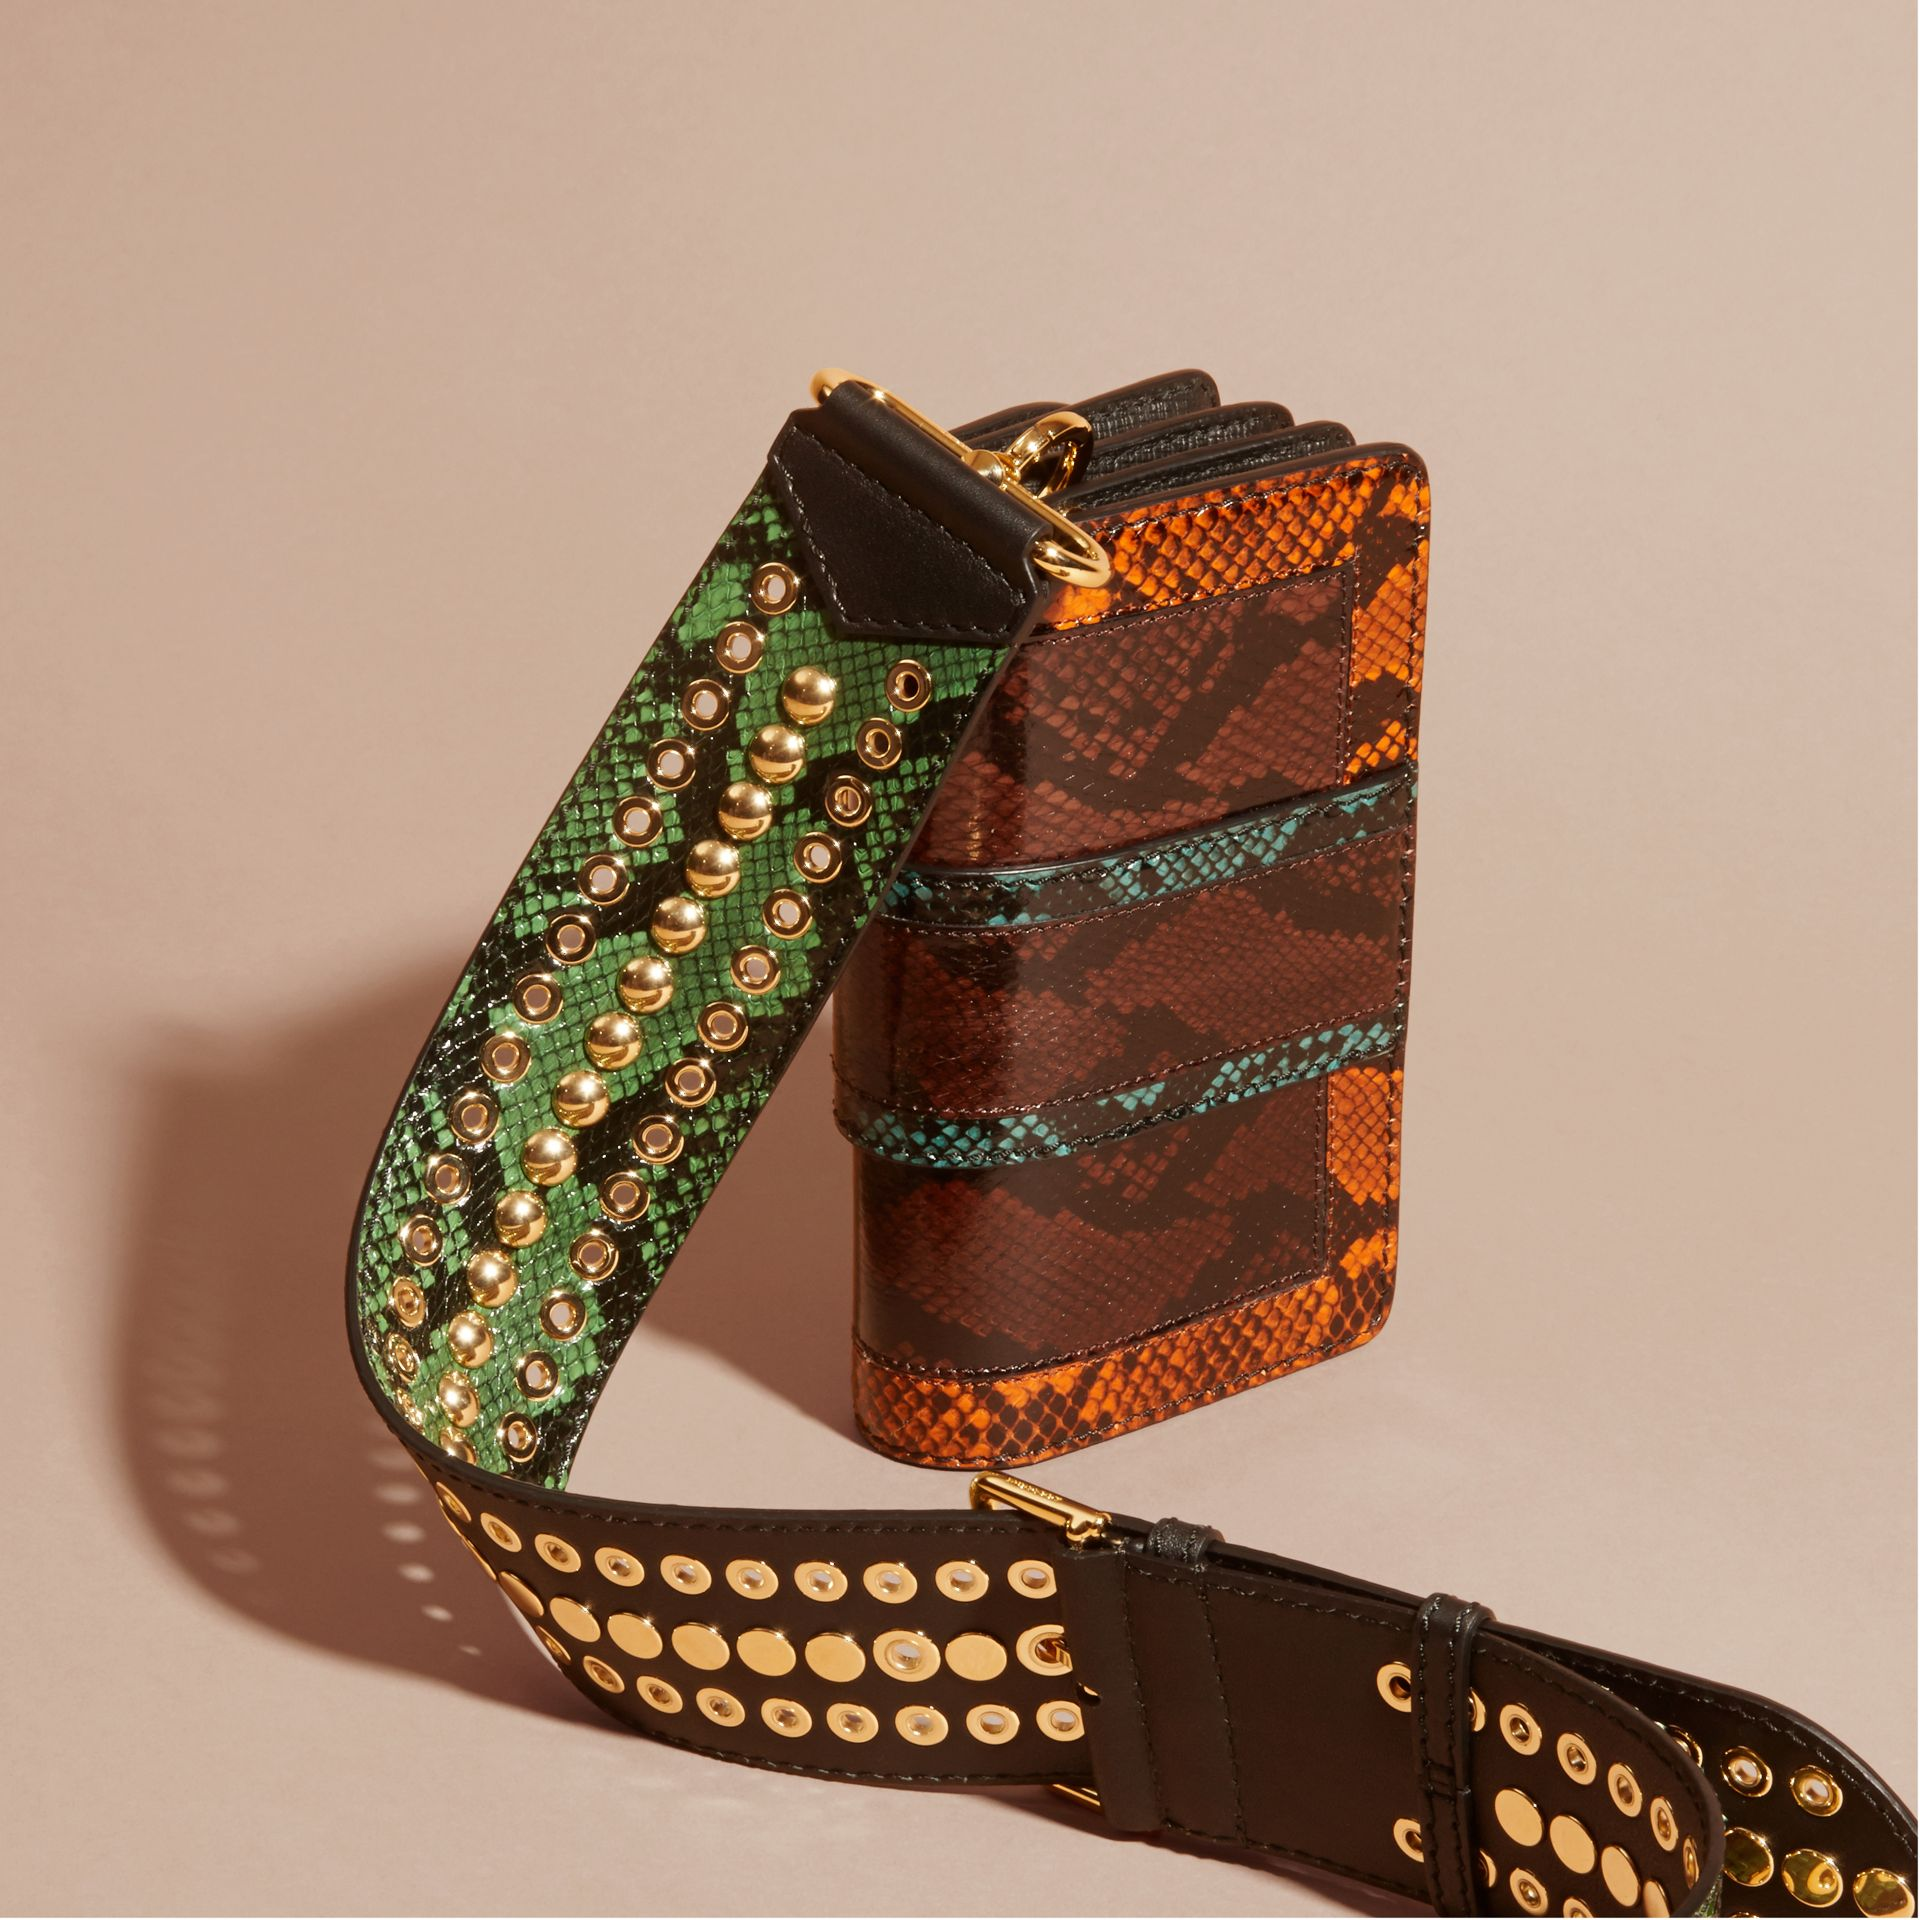 The Patchwork in Snakeskin - gallery image 2